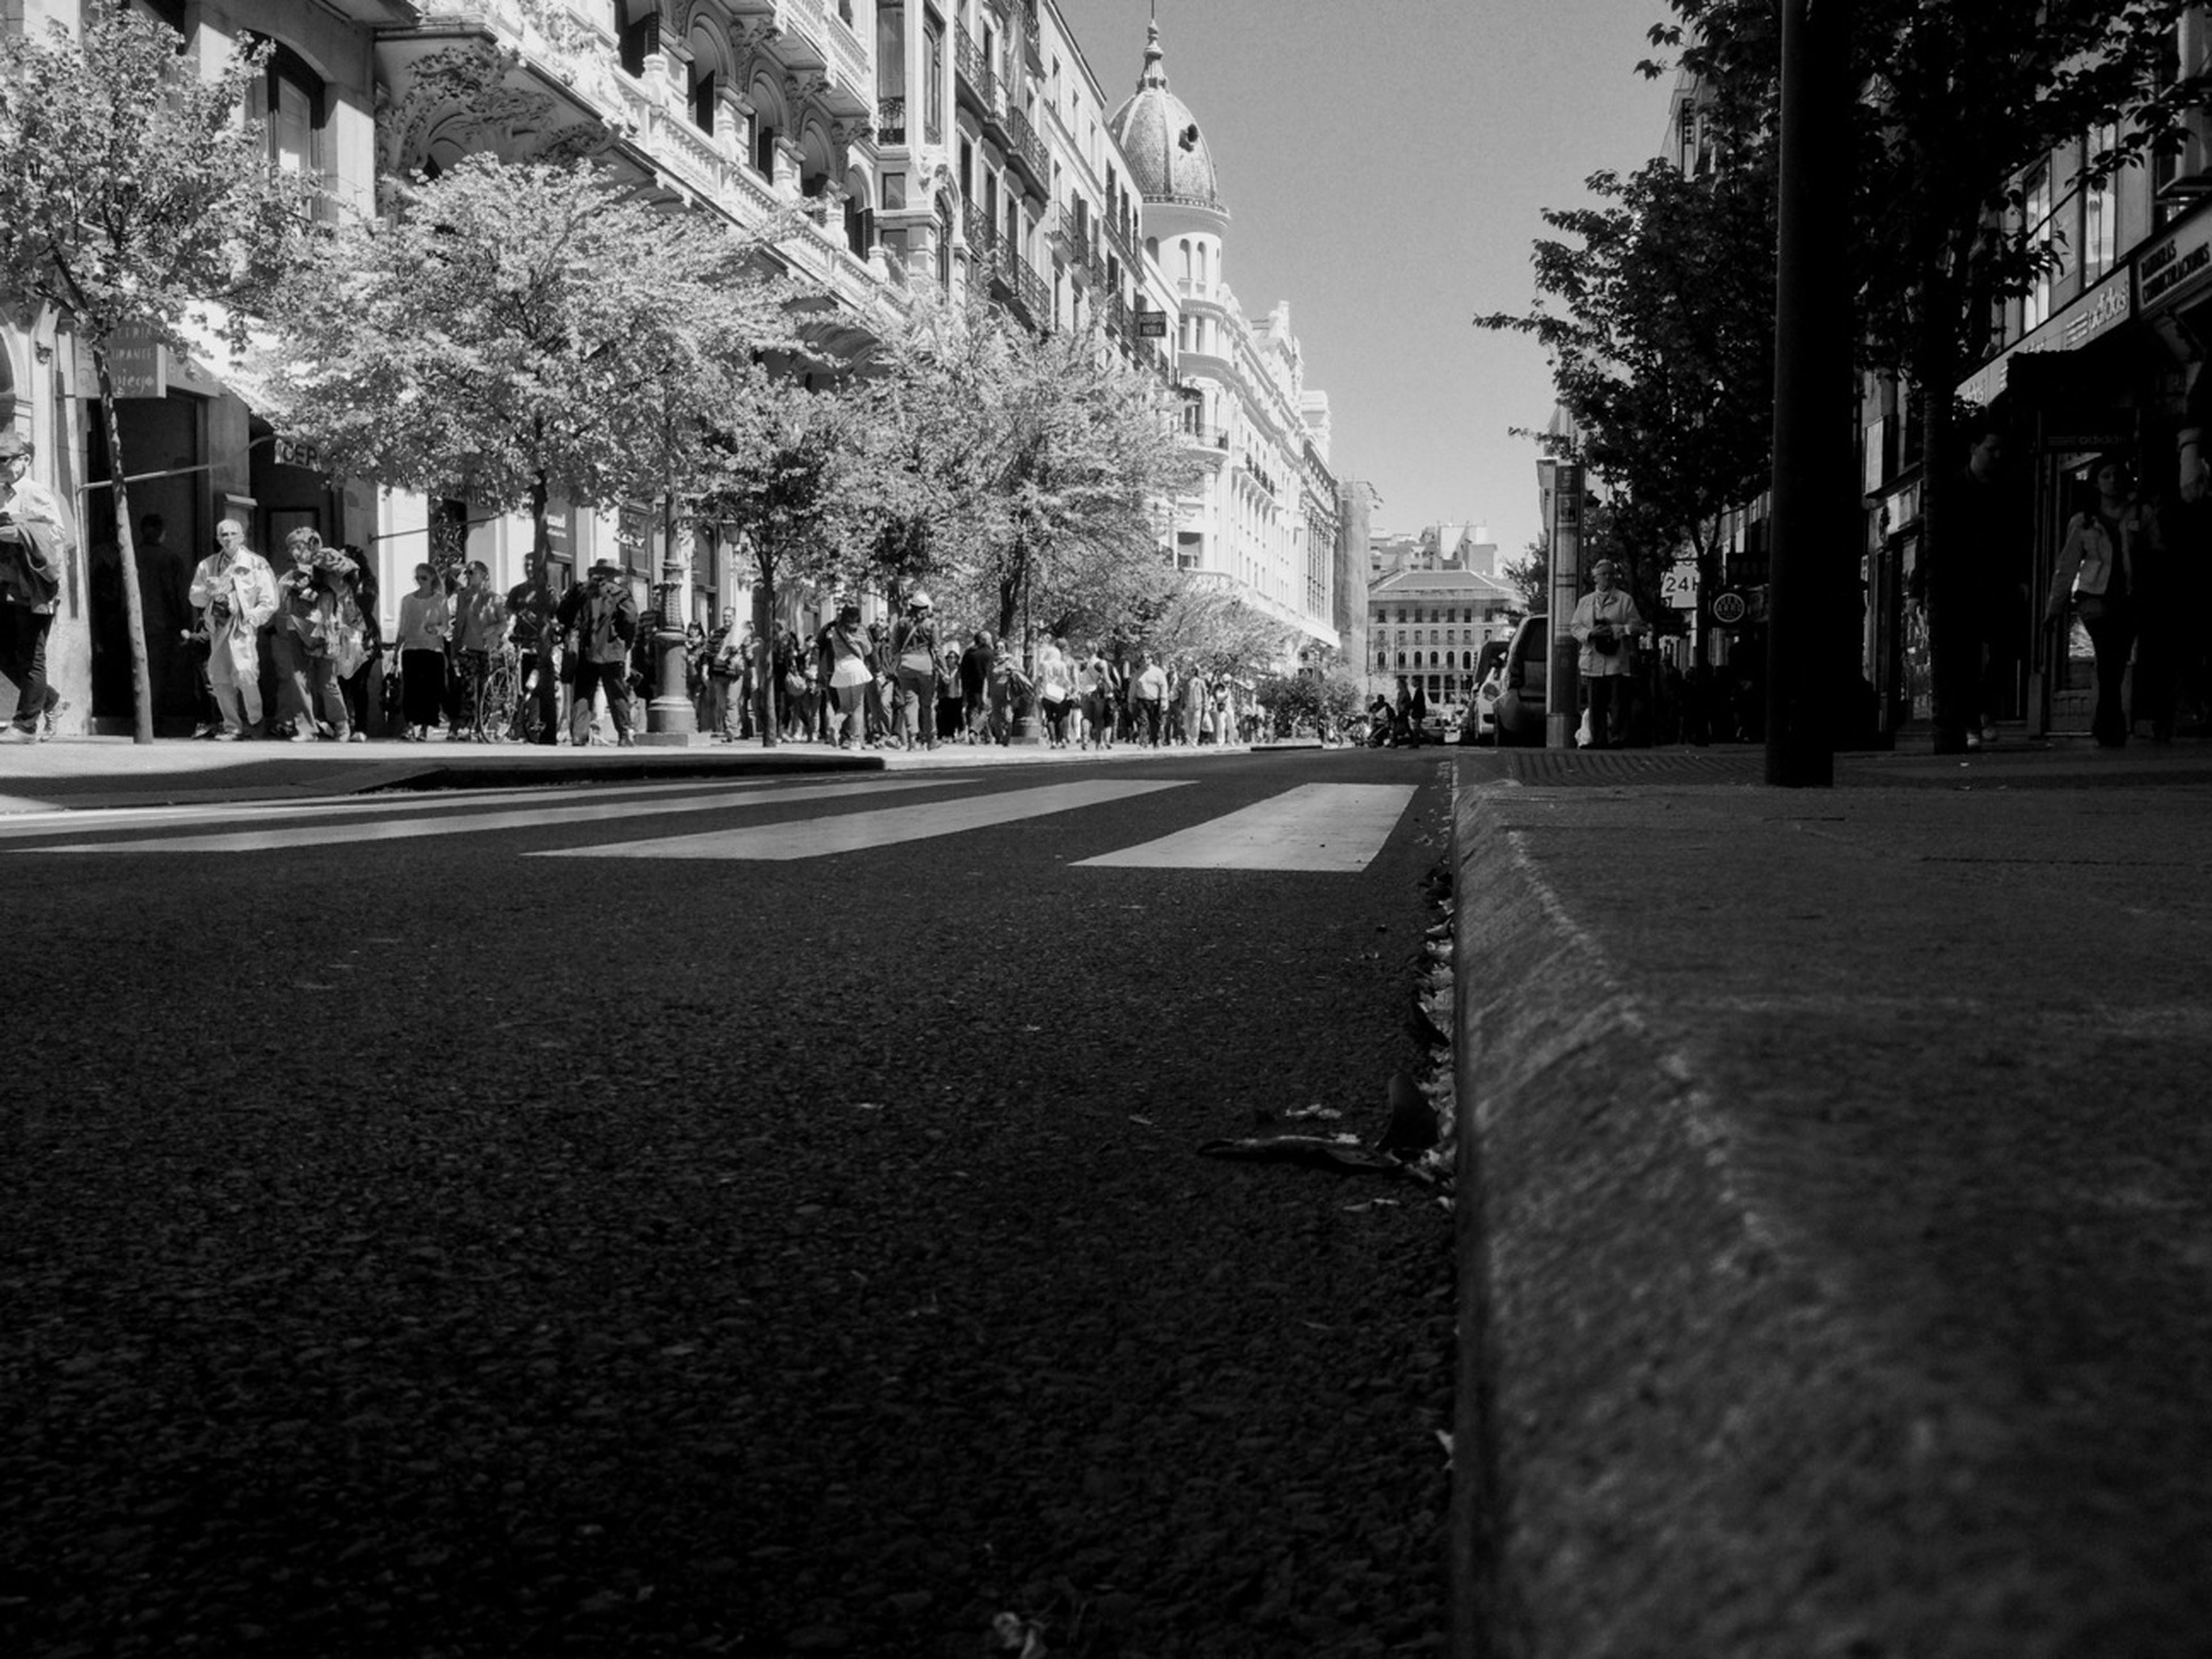 building exterior, the way forward, street, architecture, built structure, city, tree, transportation, road, diminishing perspective, vanishing point, incidental people, road marking, car, city street, city life, asphalt, building, outdoors, day